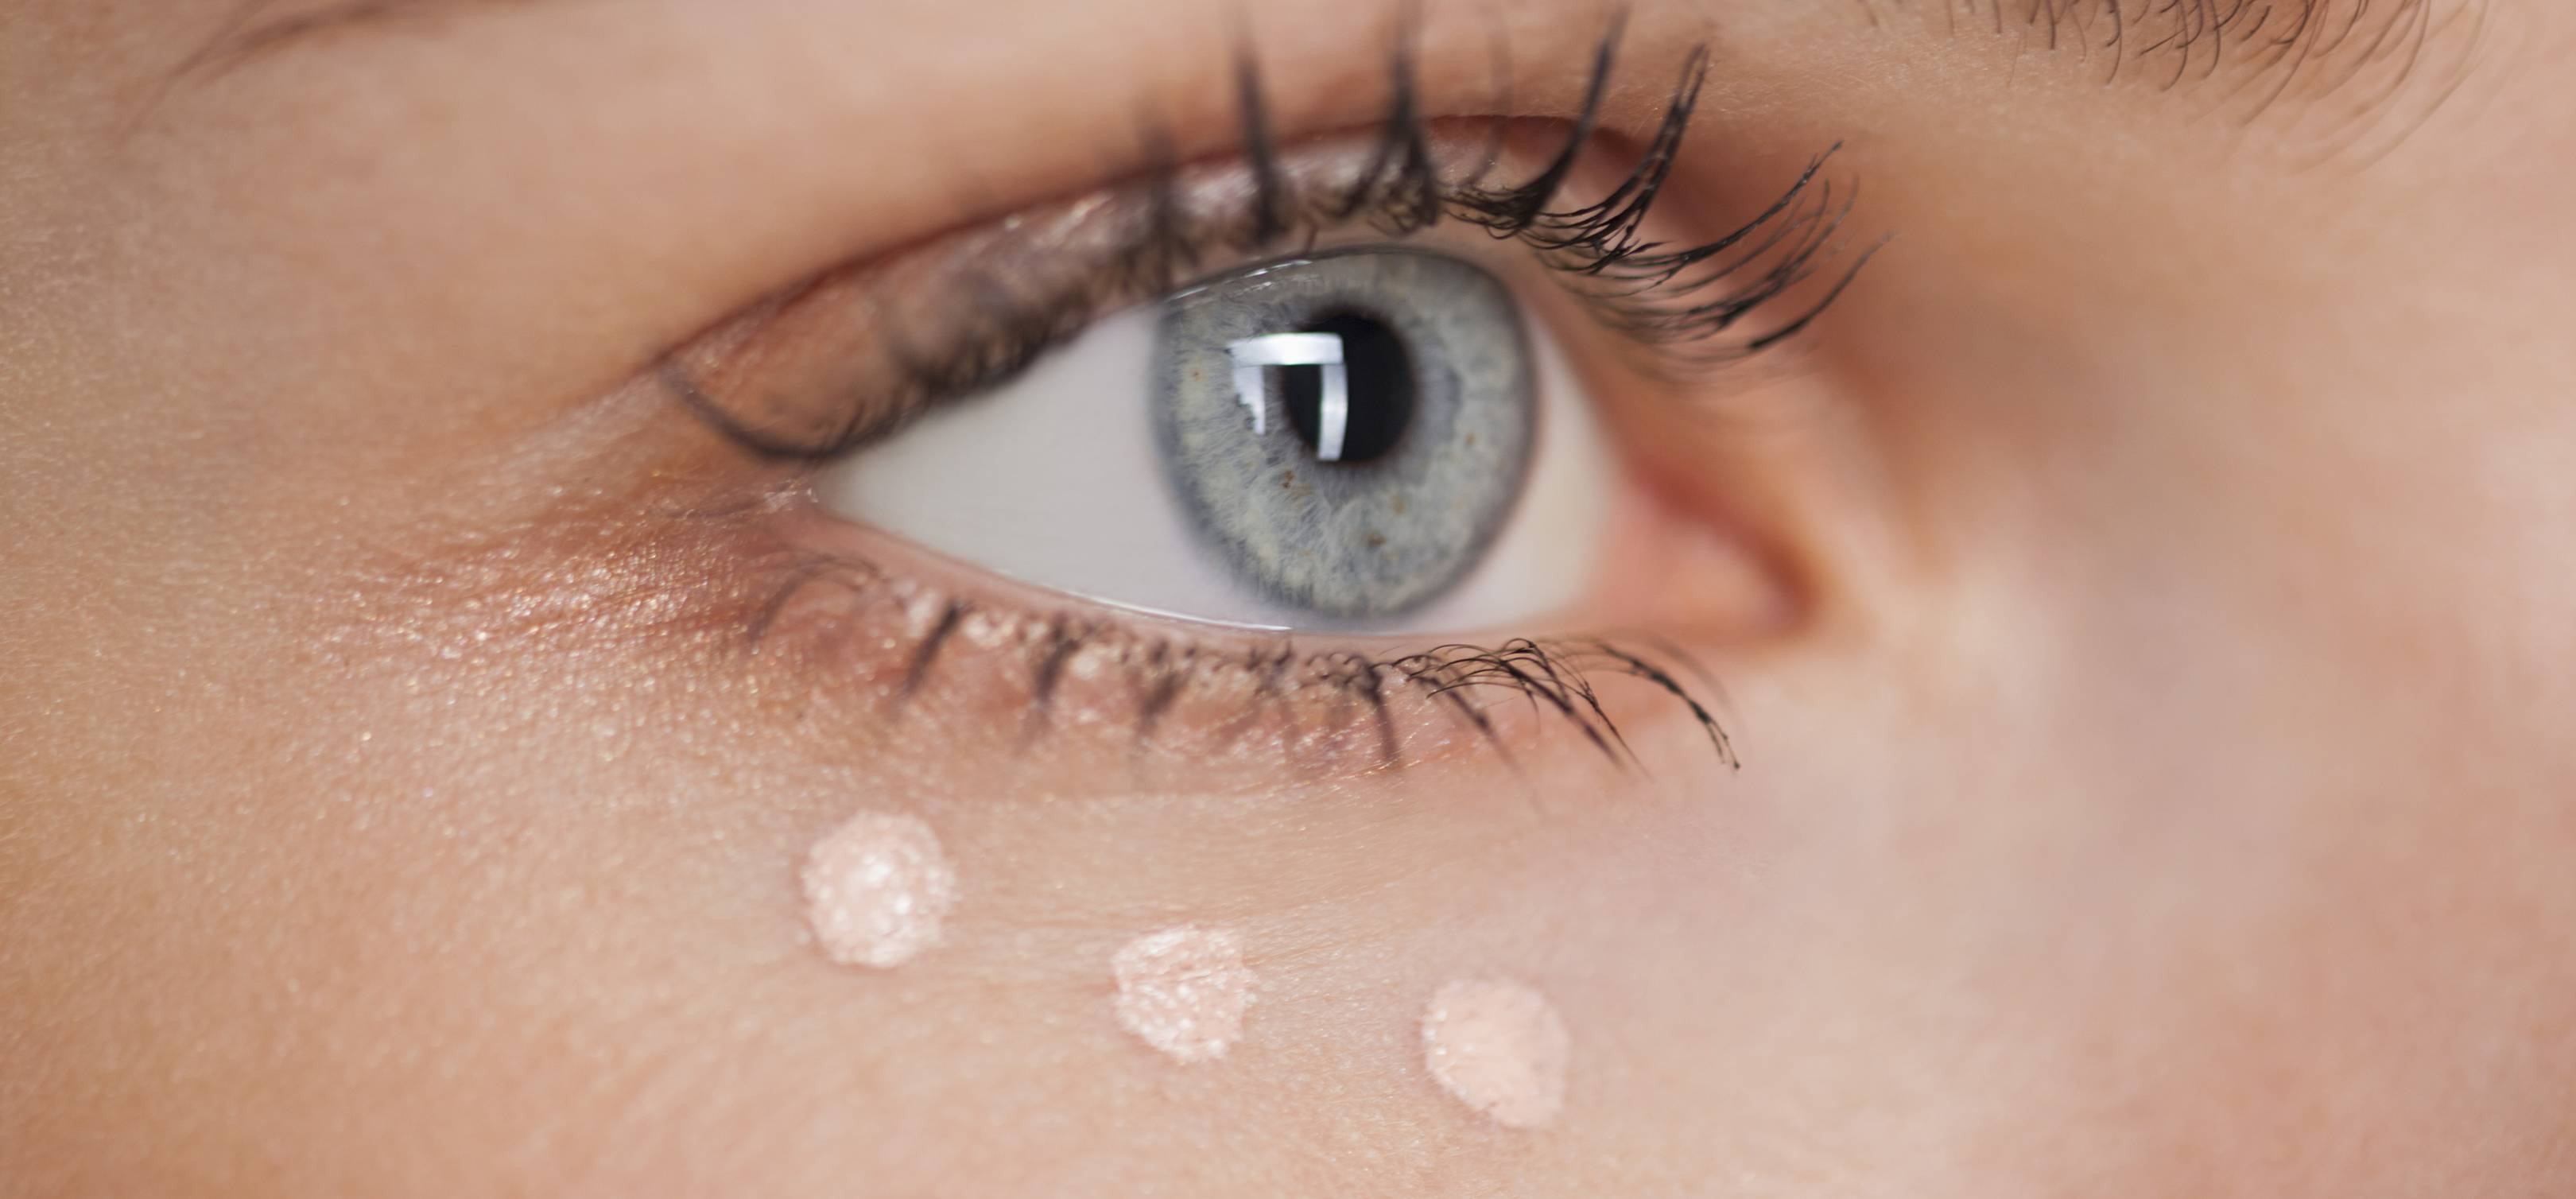 Permanent Under Eye Concealer: Cosmetic Tattooing To Hide Dark Circles | Glamour UK